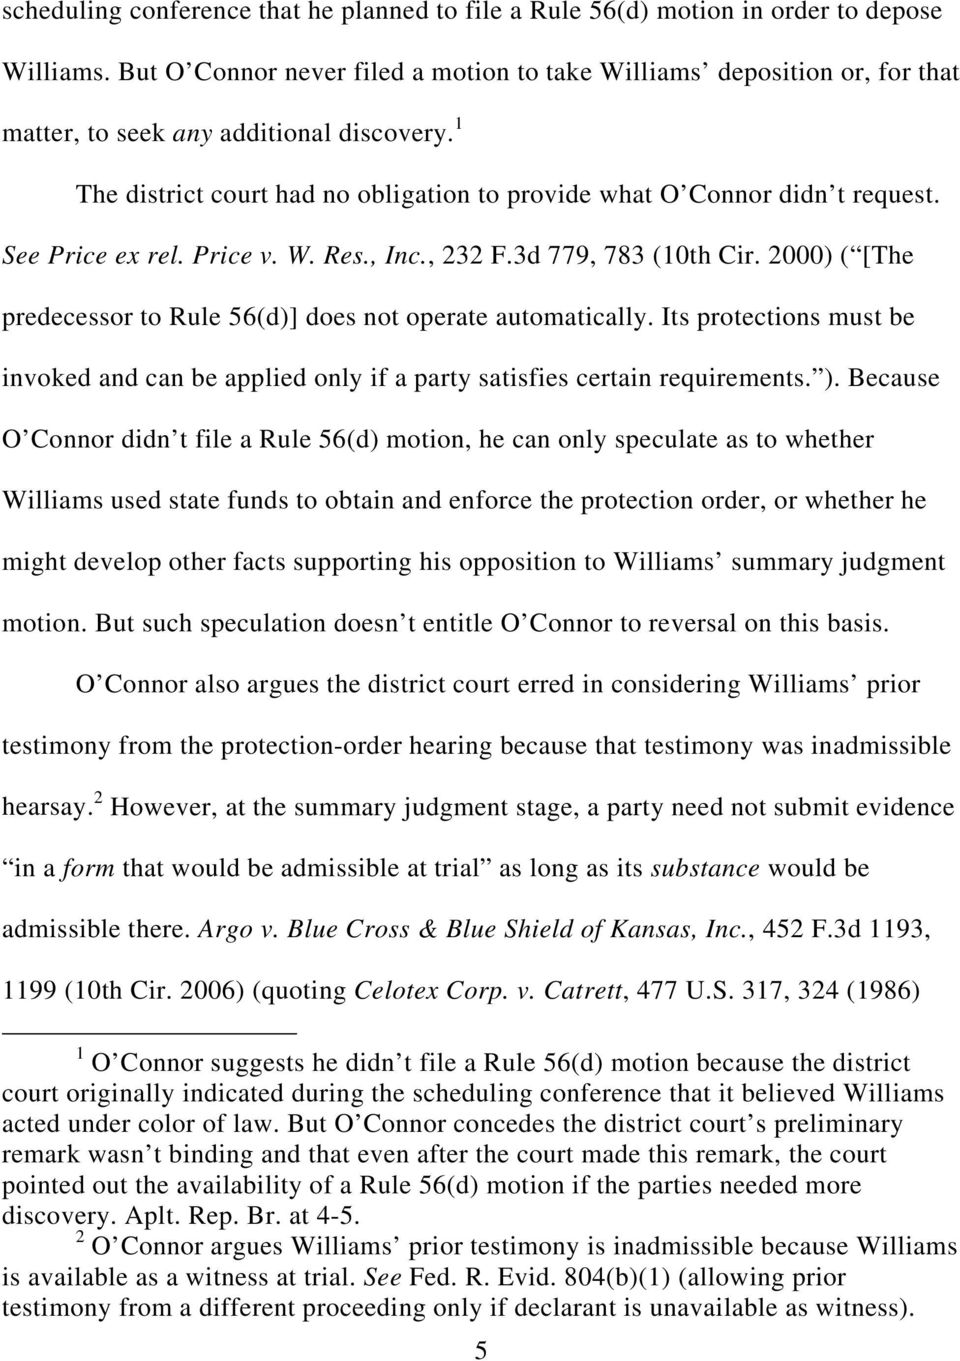 See Price ex rel. Price v. W. Res., Inc., 232 F.3d 779, 783 (10th Cir. 2000) ( [The predecessor to Rule 56(d)] does not operate automatically.